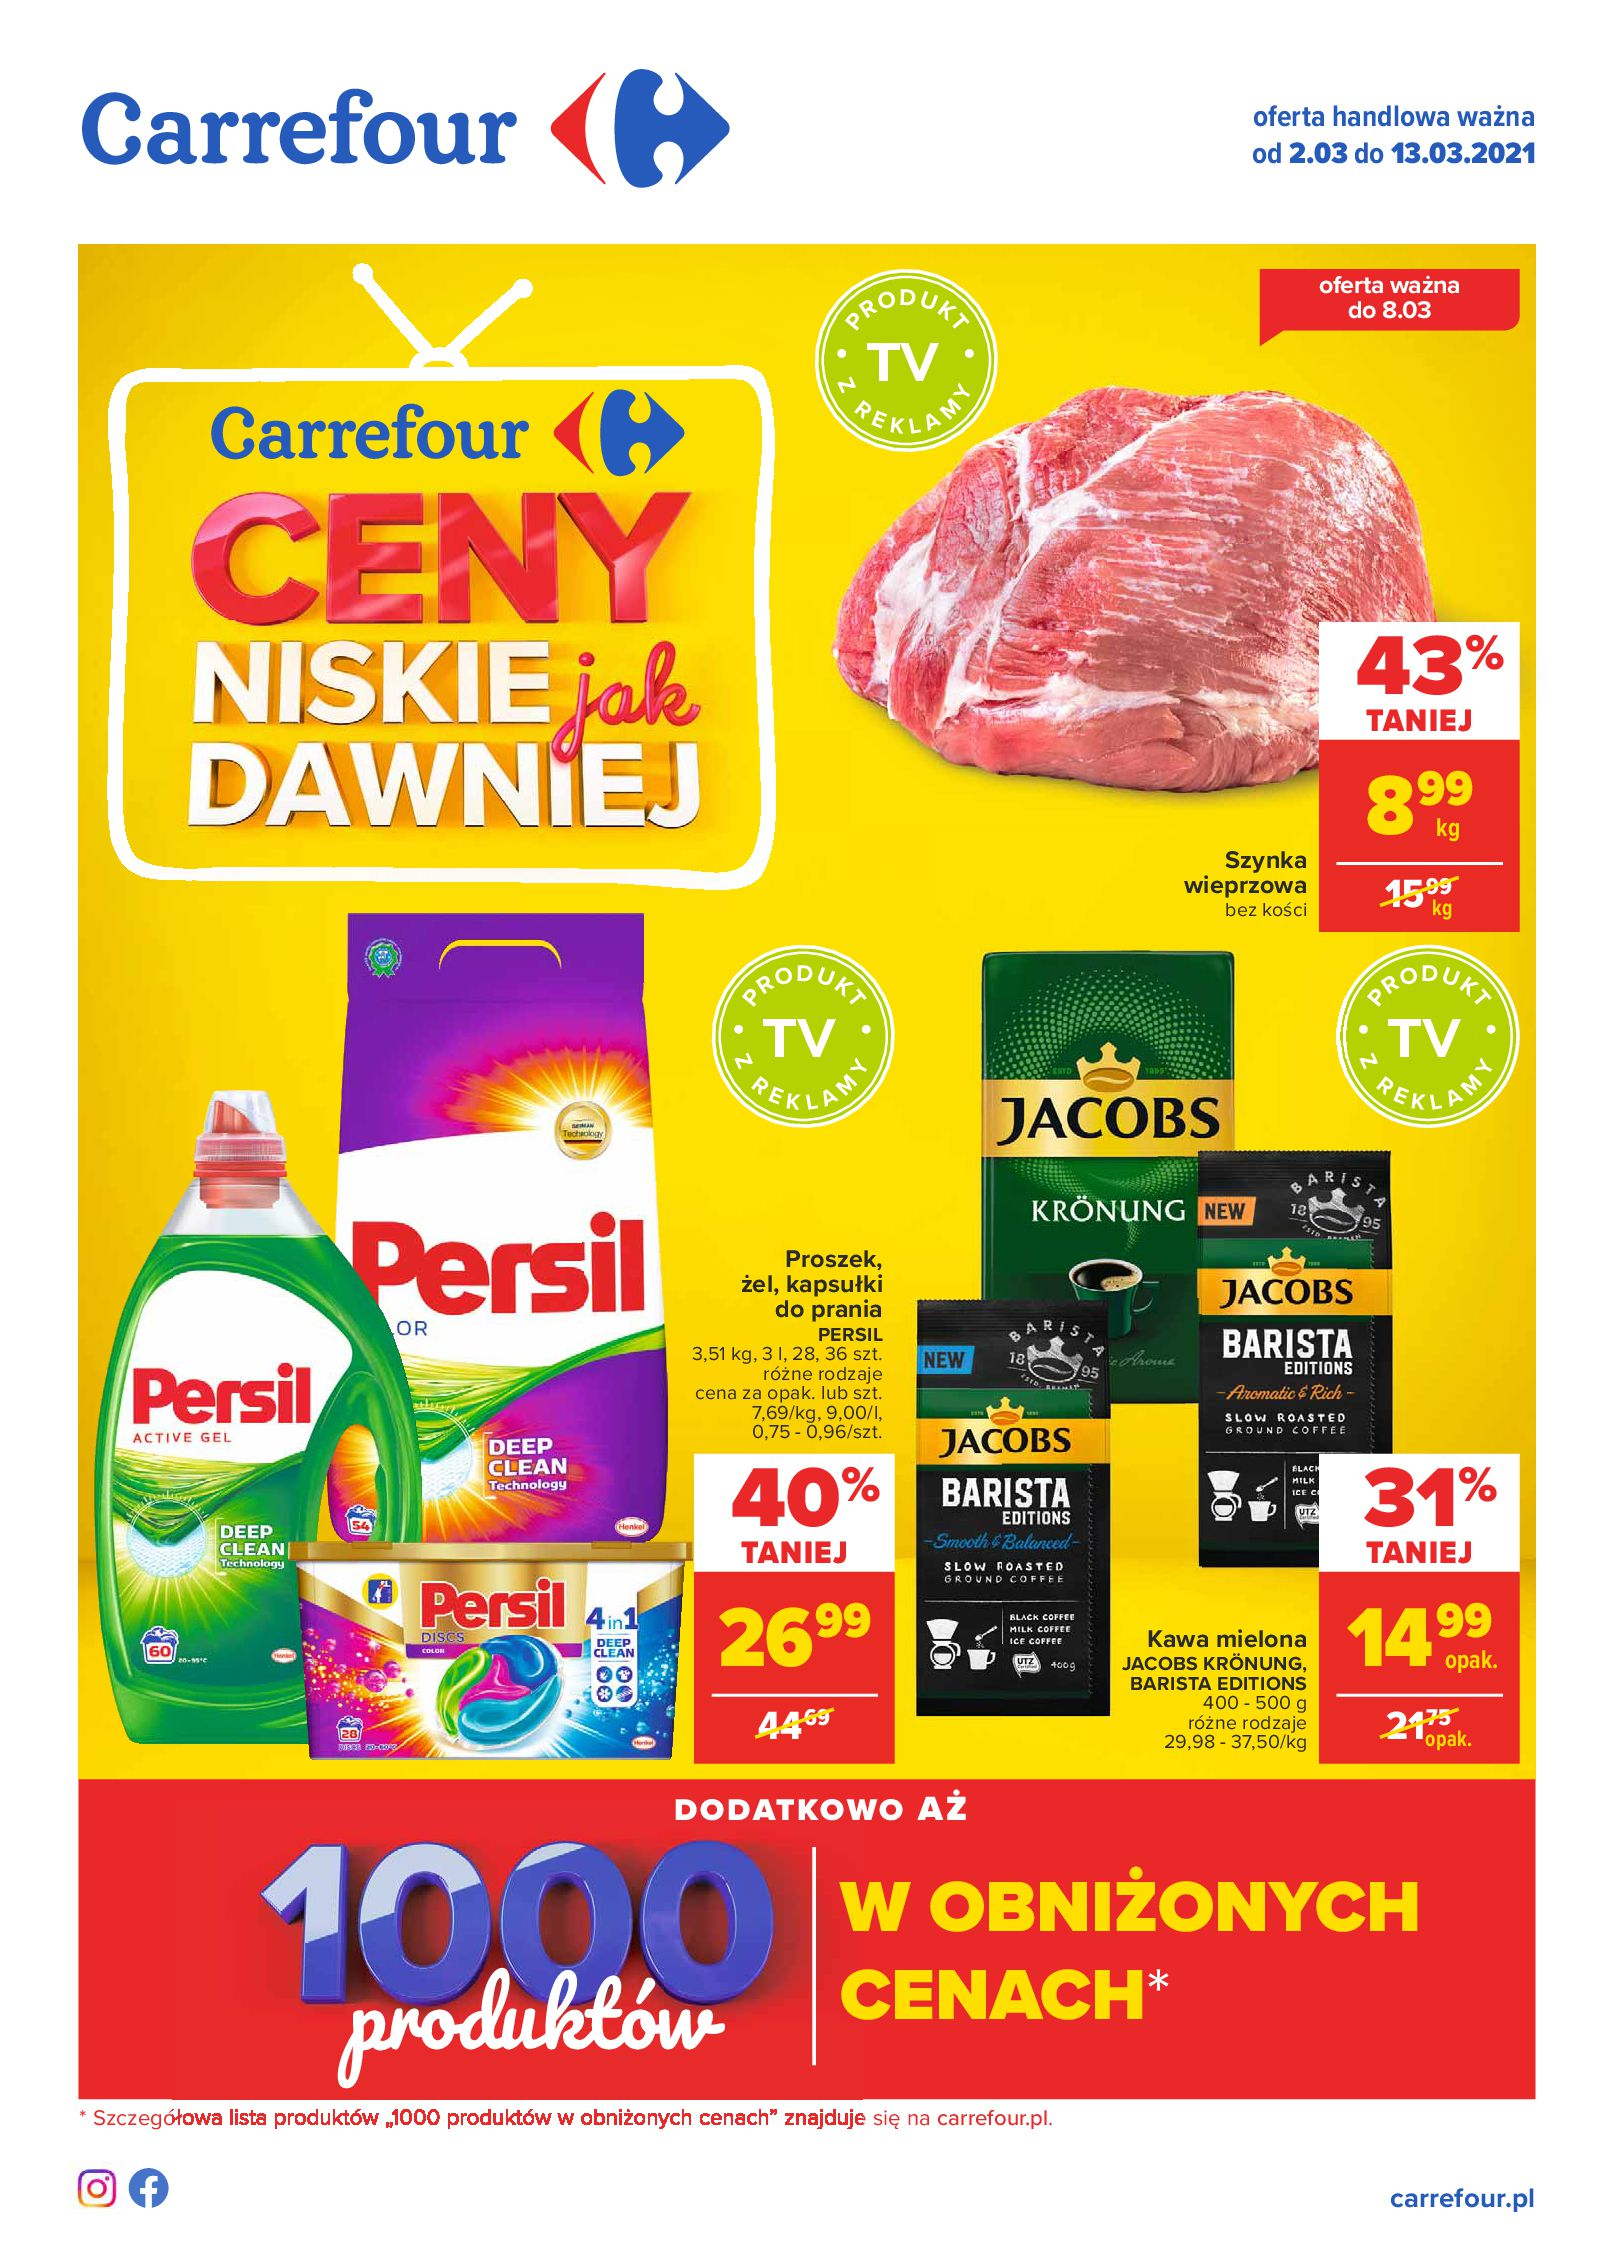 Carrefour:  Gazetka Carrefour 01.03.2021